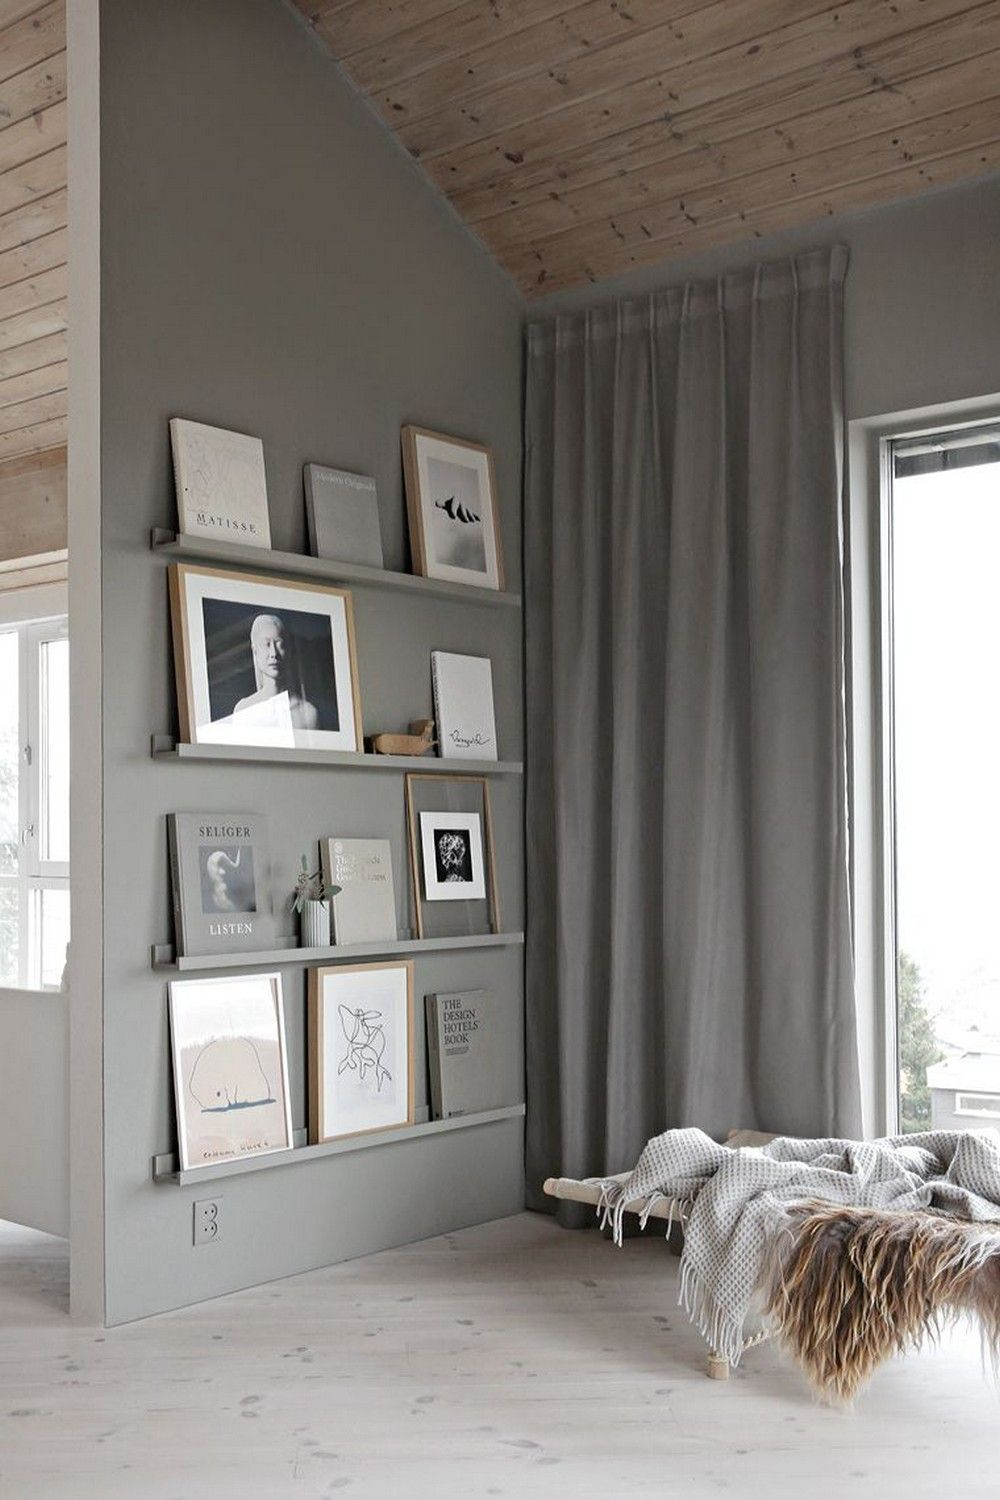 IKEAHacksforHome39.jpg 1,000×1,500 pixels (With images